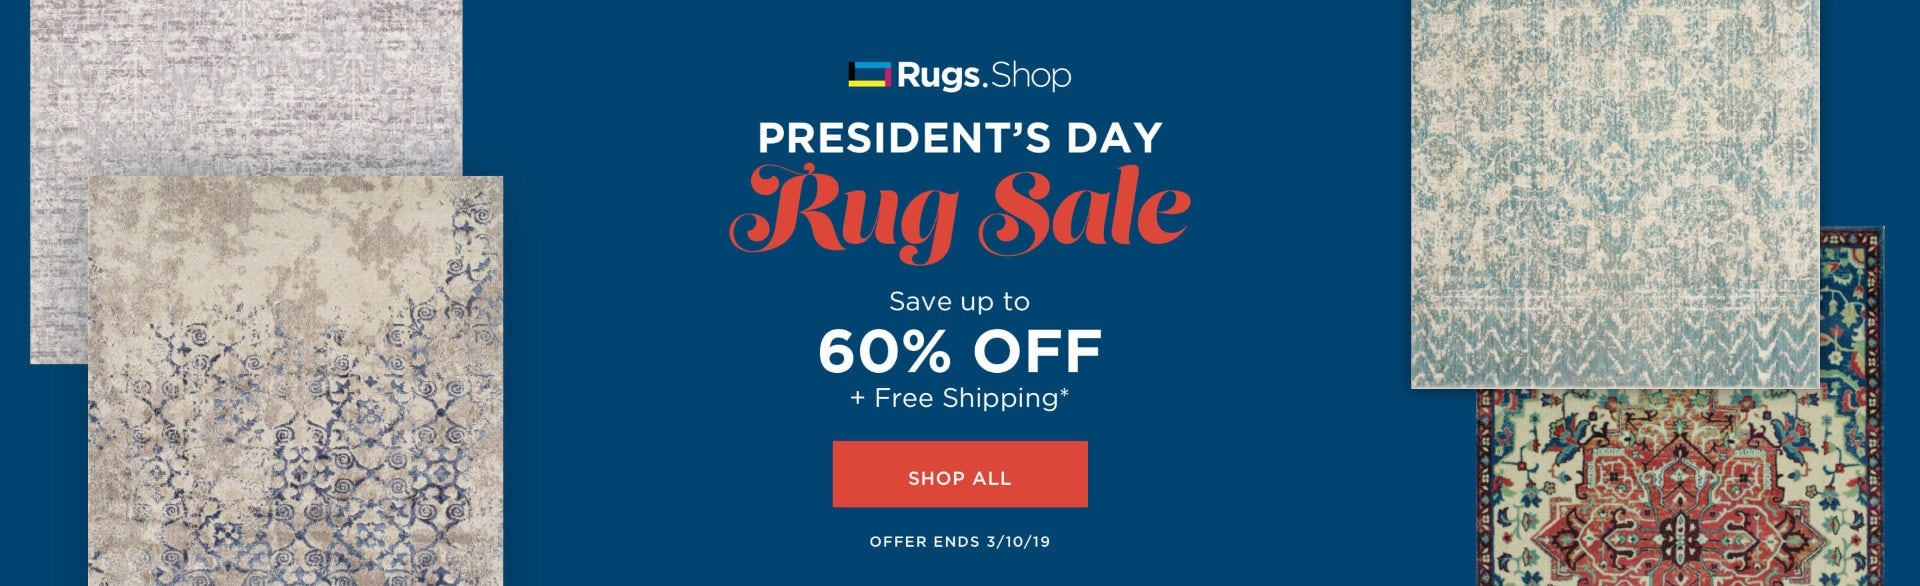 Rugs.Shop President's Day